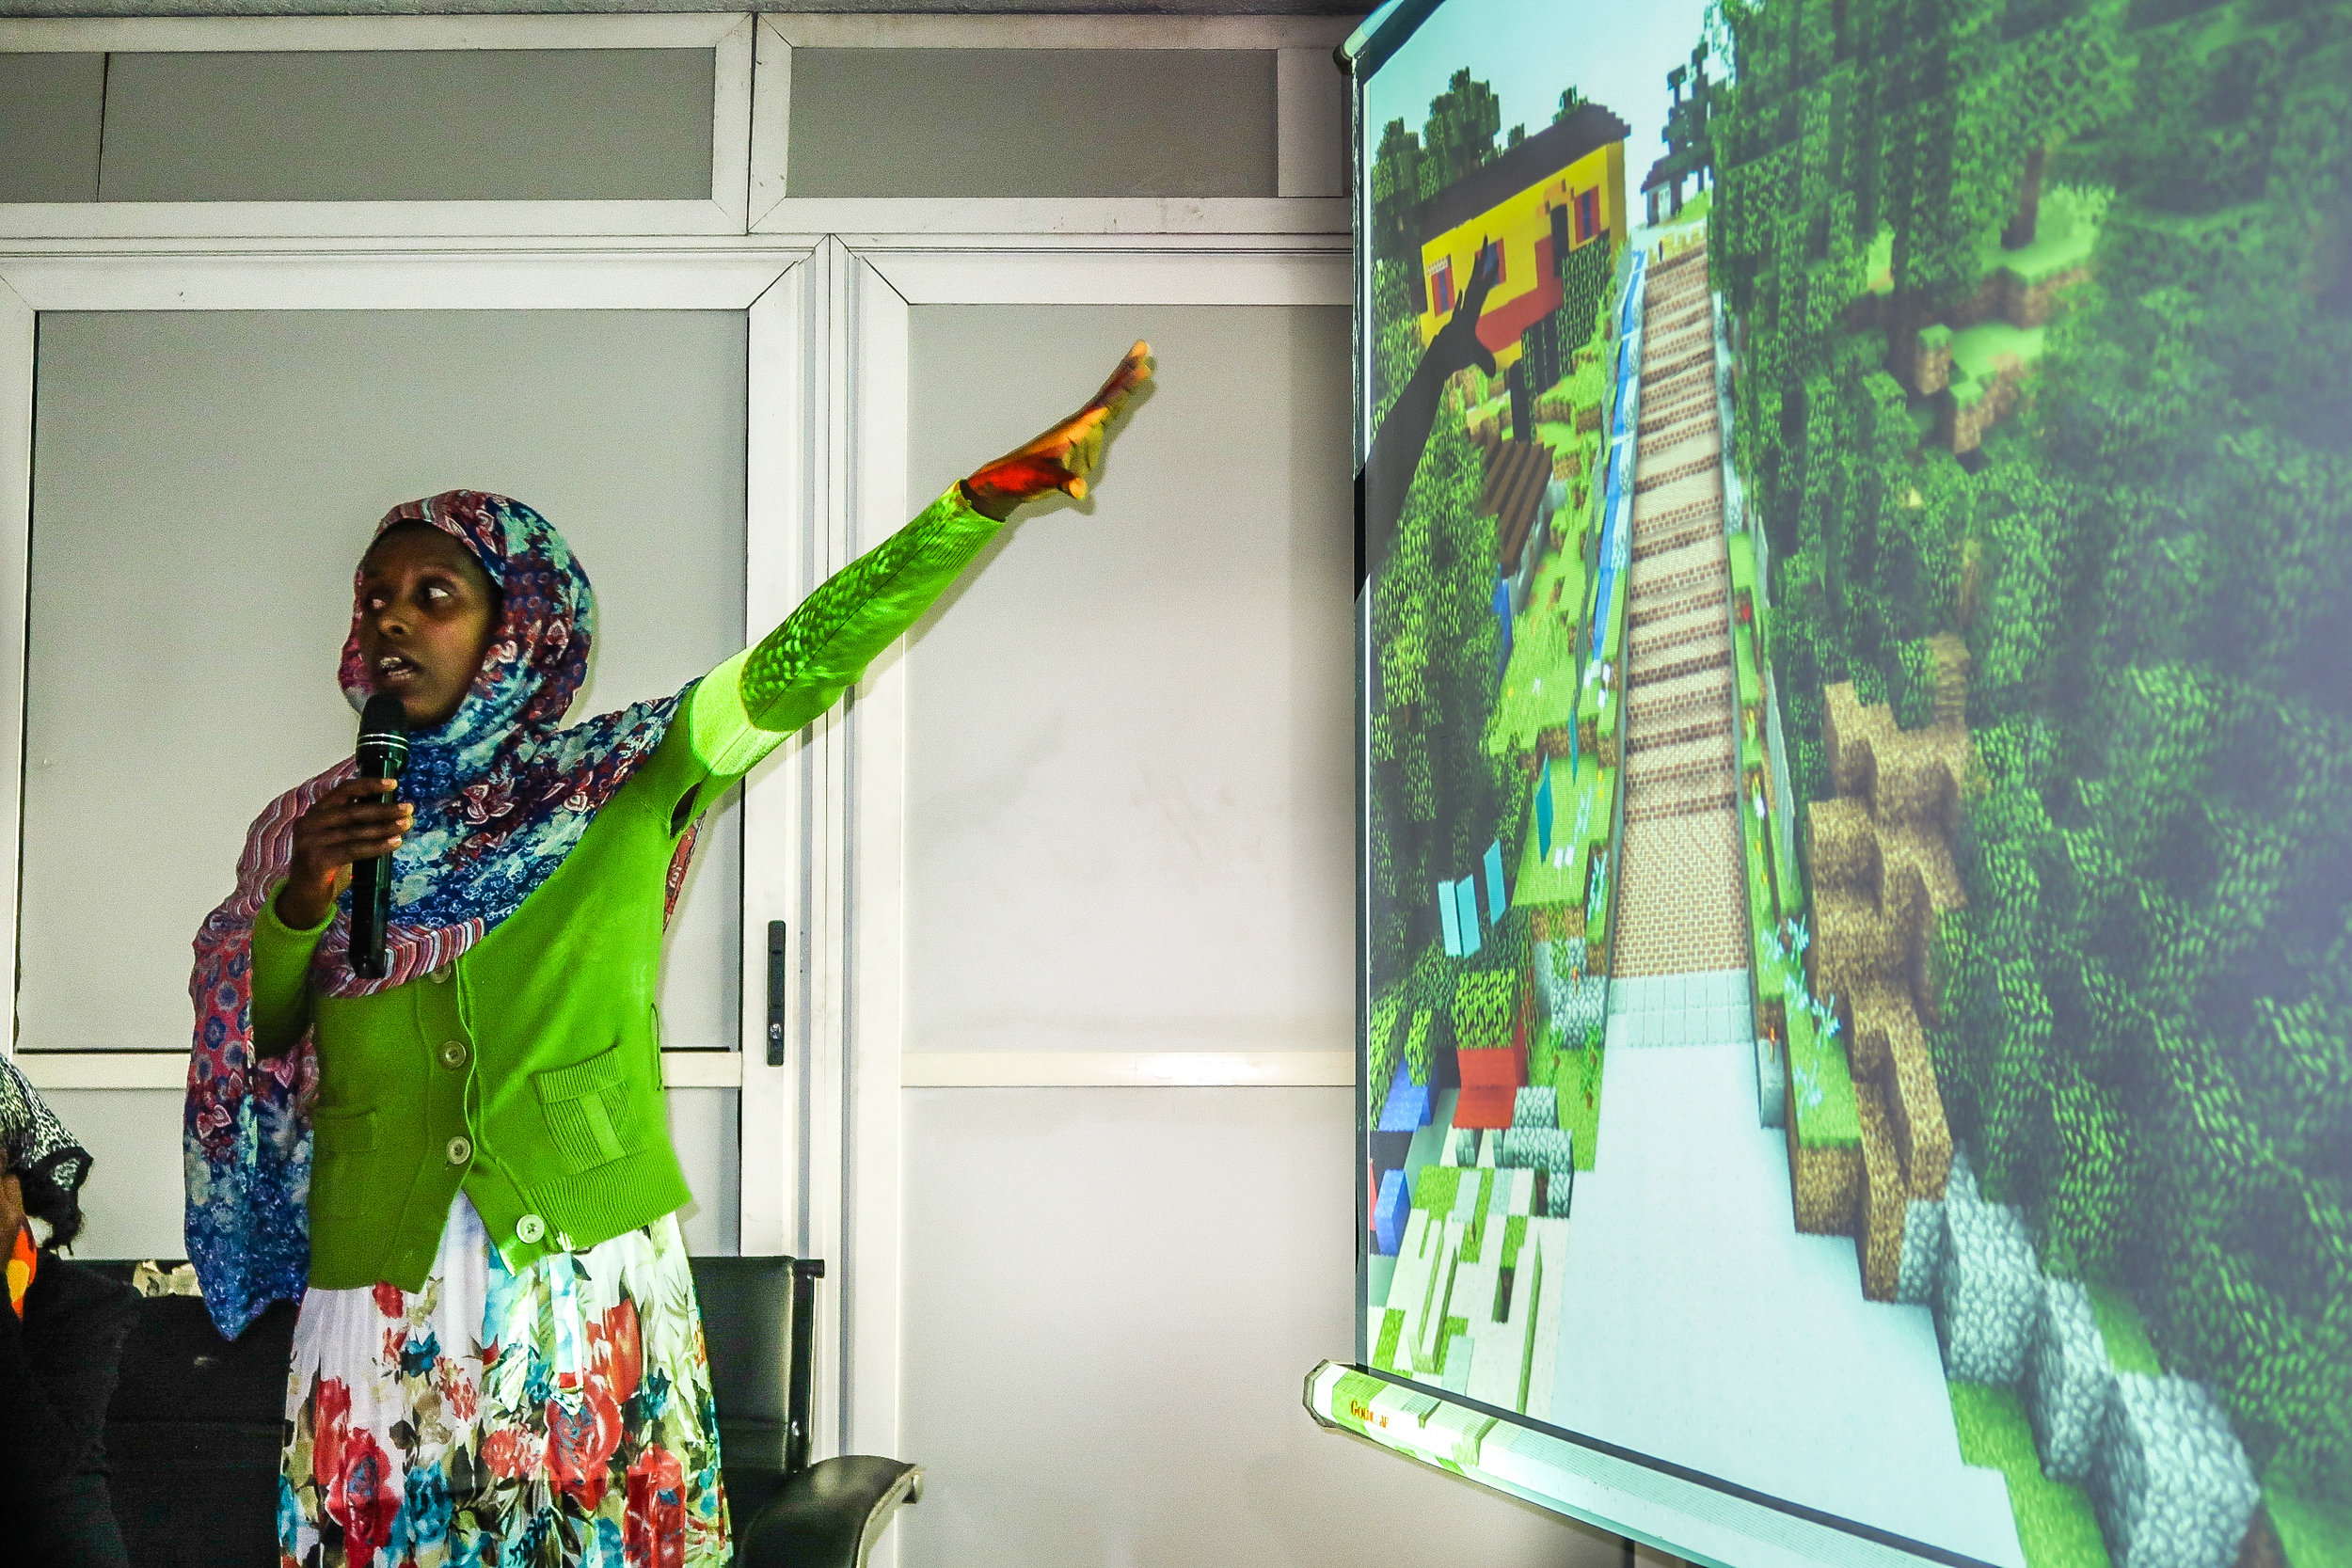 Residents of Addis Ababa, Ethiopia, used Minecraft to help shape the renovation of crucial waterfront infrastructure and protect public spaces for public use. Credit: UN-Habitat